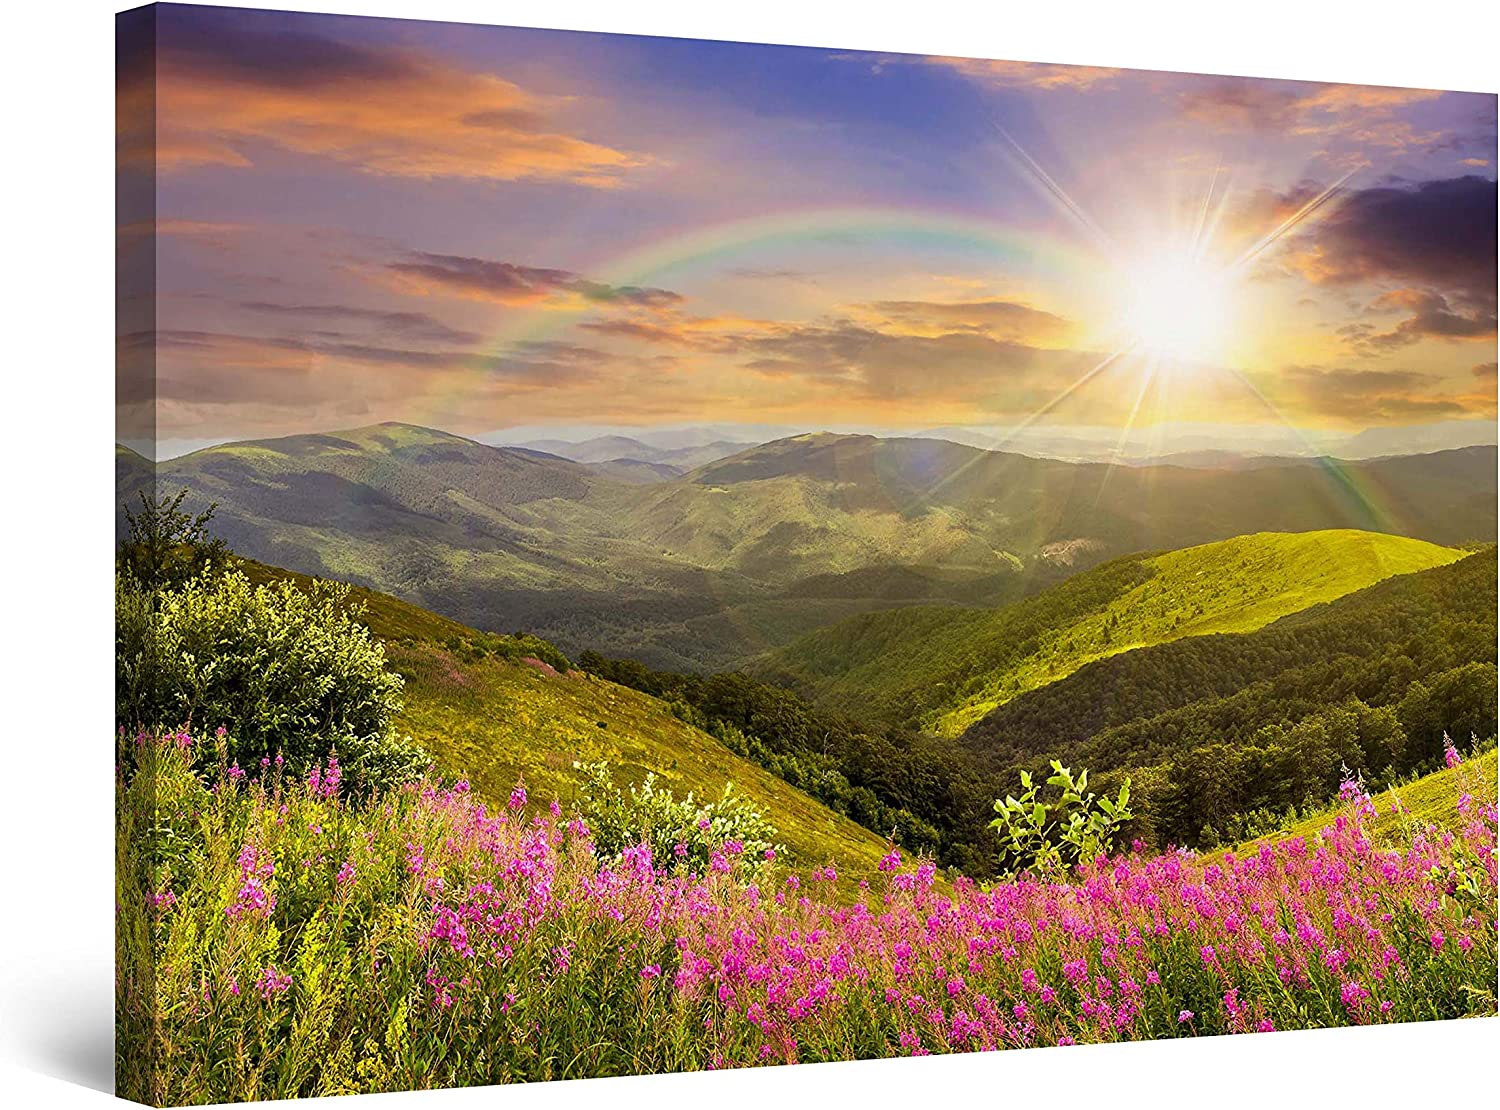 Startonight Canvas Wall Art - Daydream Sun, Rainbow and Beautiful Nature, Landscape Framed 32 x 48 Inches